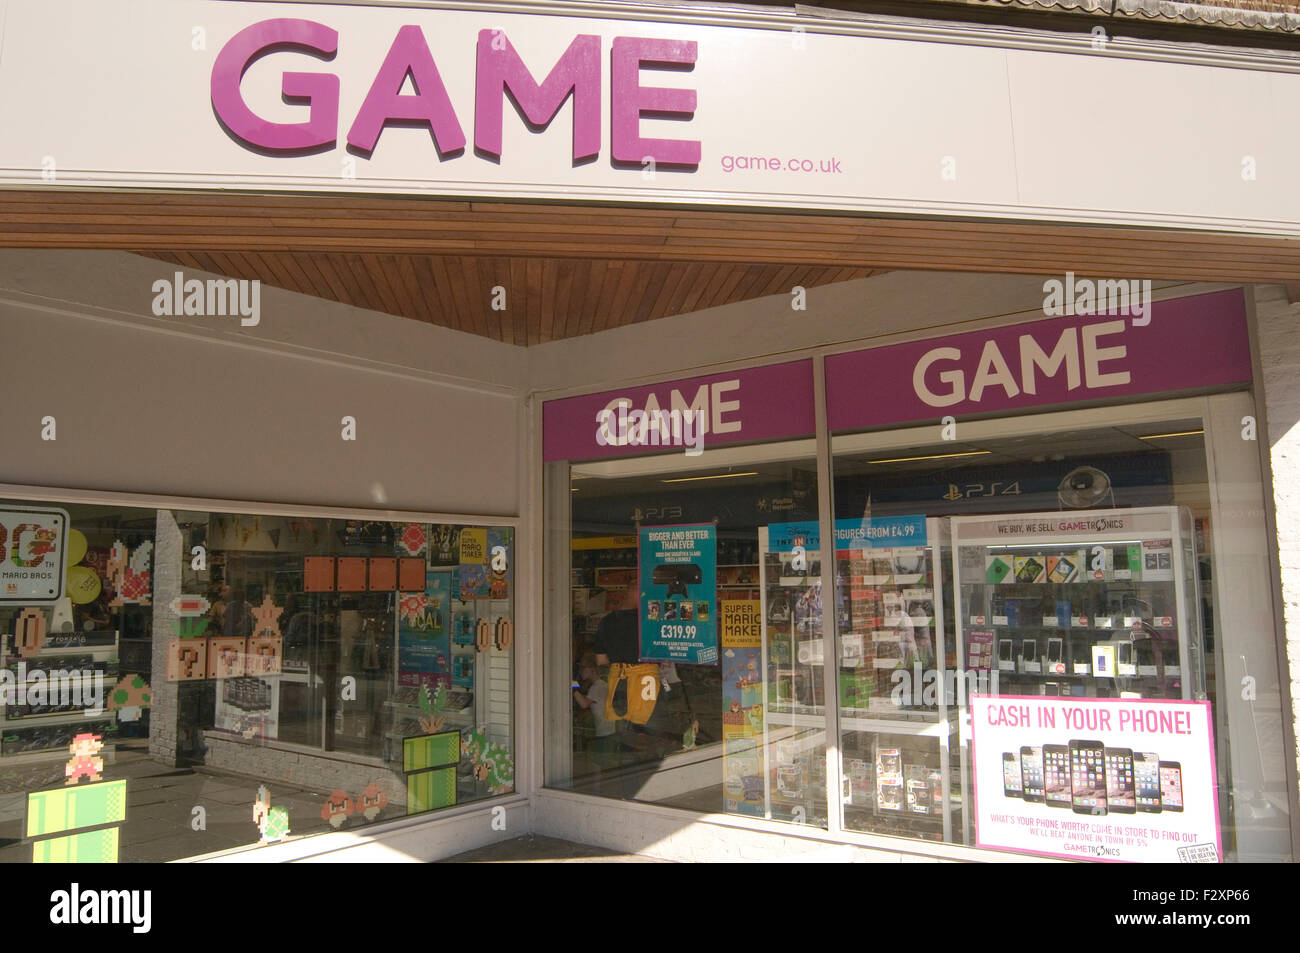 game uk secondhand games and electrical goods retailer shop shops Stock Photo